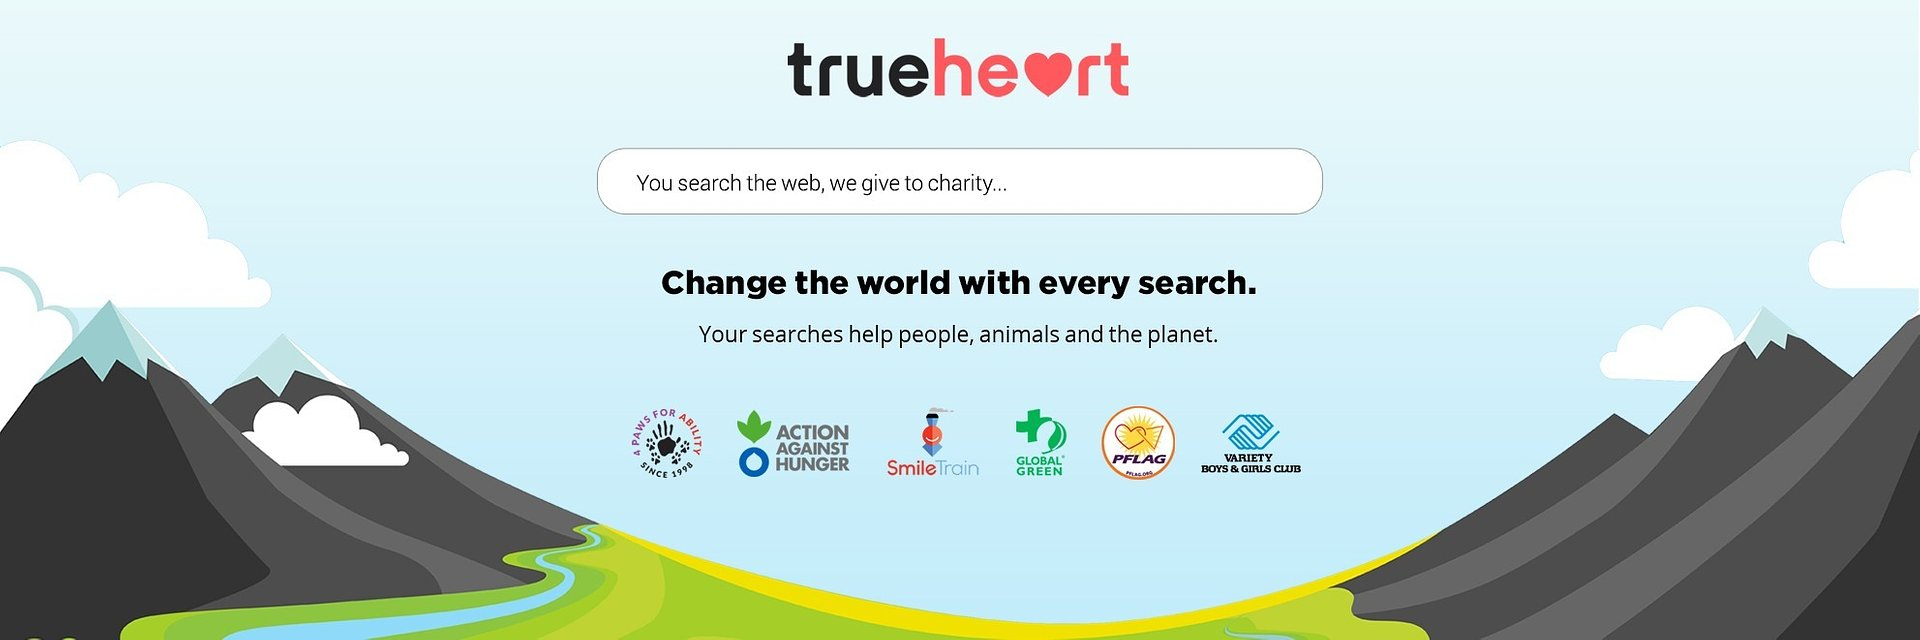 SUPPORT OUR YOUTH WITH EVERY SEARCH AT TRUEHEART